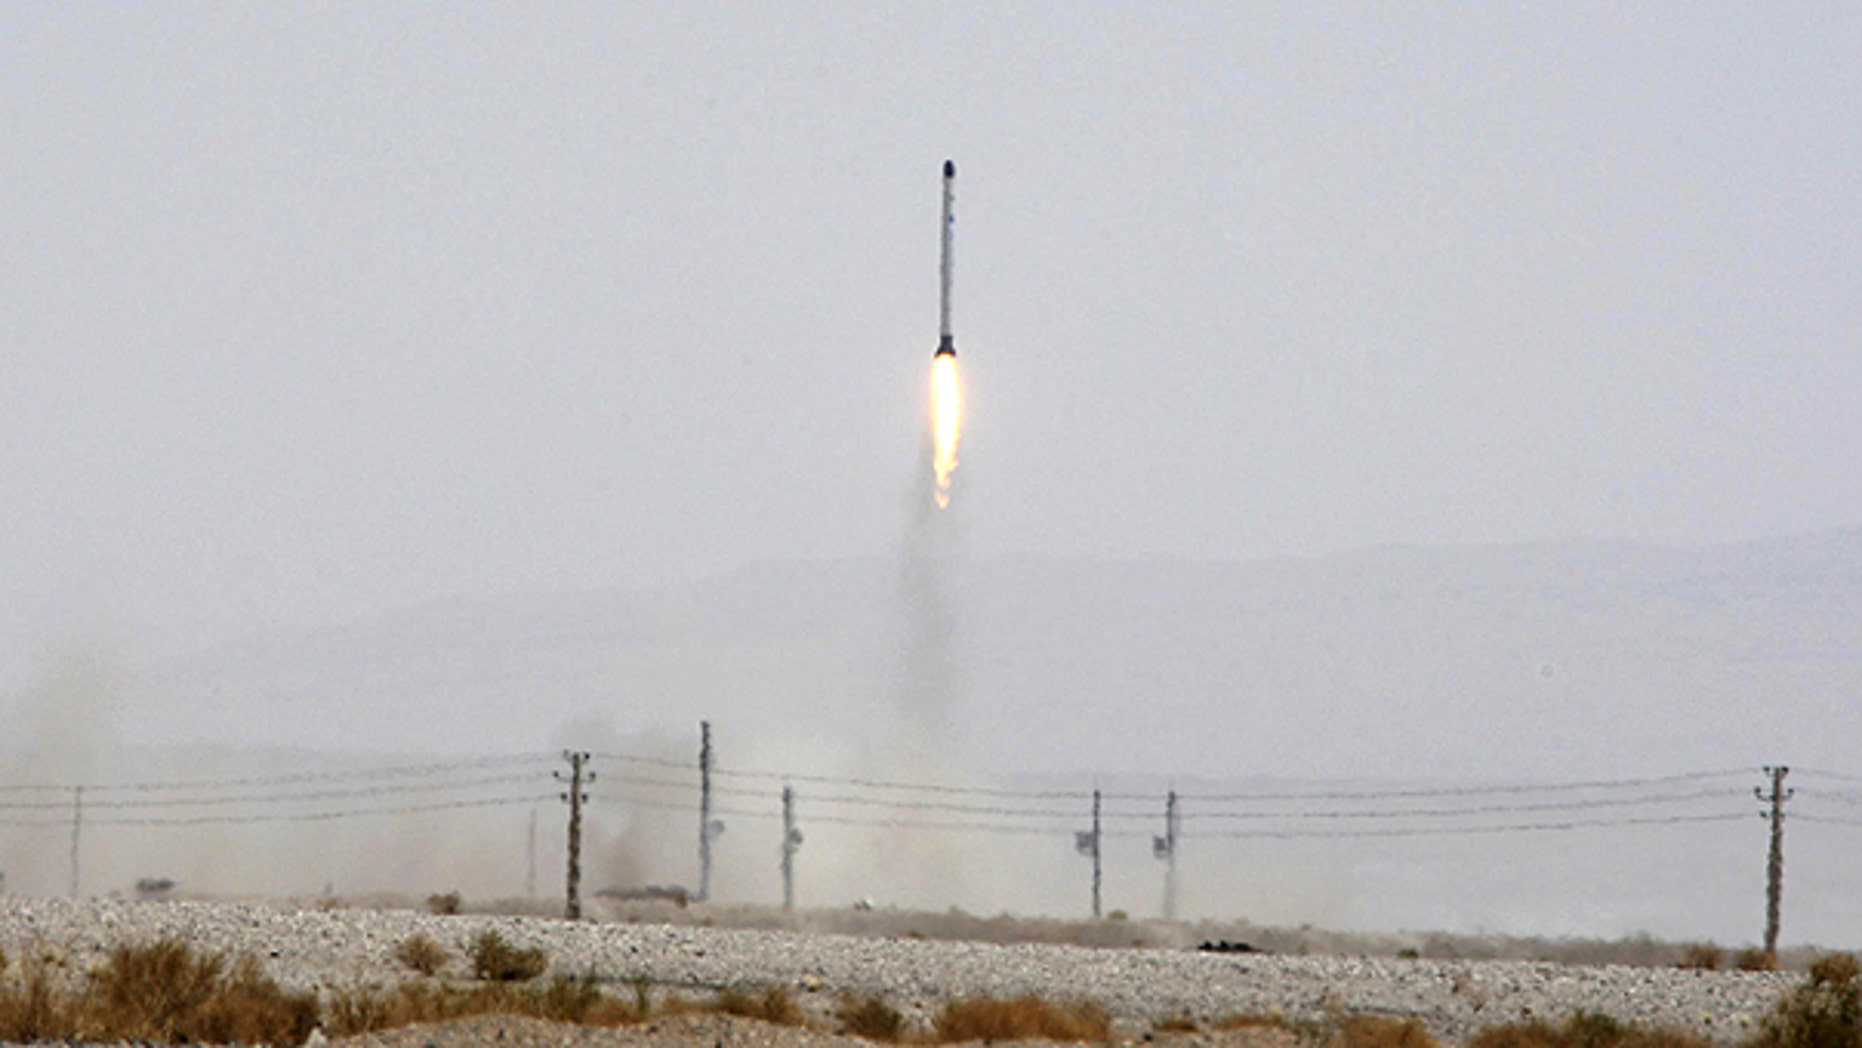 This file photo released June 16, 2011, by the Iranian Defense Ministry, claims to show launching the Safir, or Ambassador, satellite carrier, which carries Iran's Rasad, or Observation, satellite into earth orbit, in an undisclosed location.